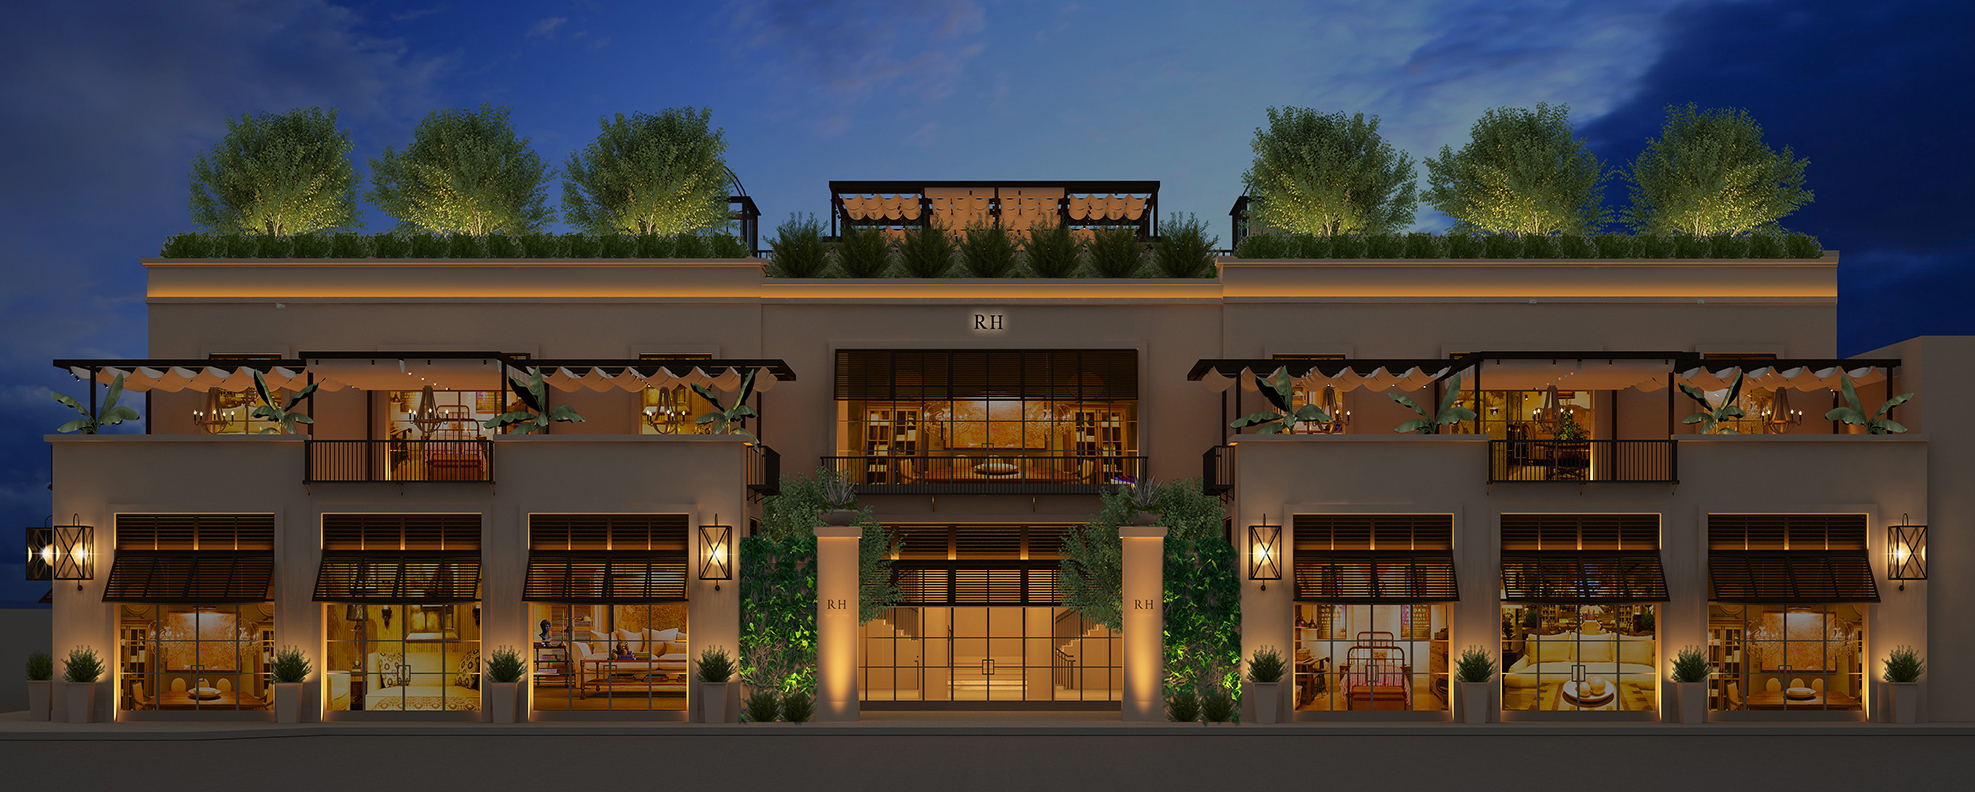 restoration hardware announces the opening of rh west hollywood the gallery on melrose avenue. Black Bedroom Furniture Sets. Home Design Ideas